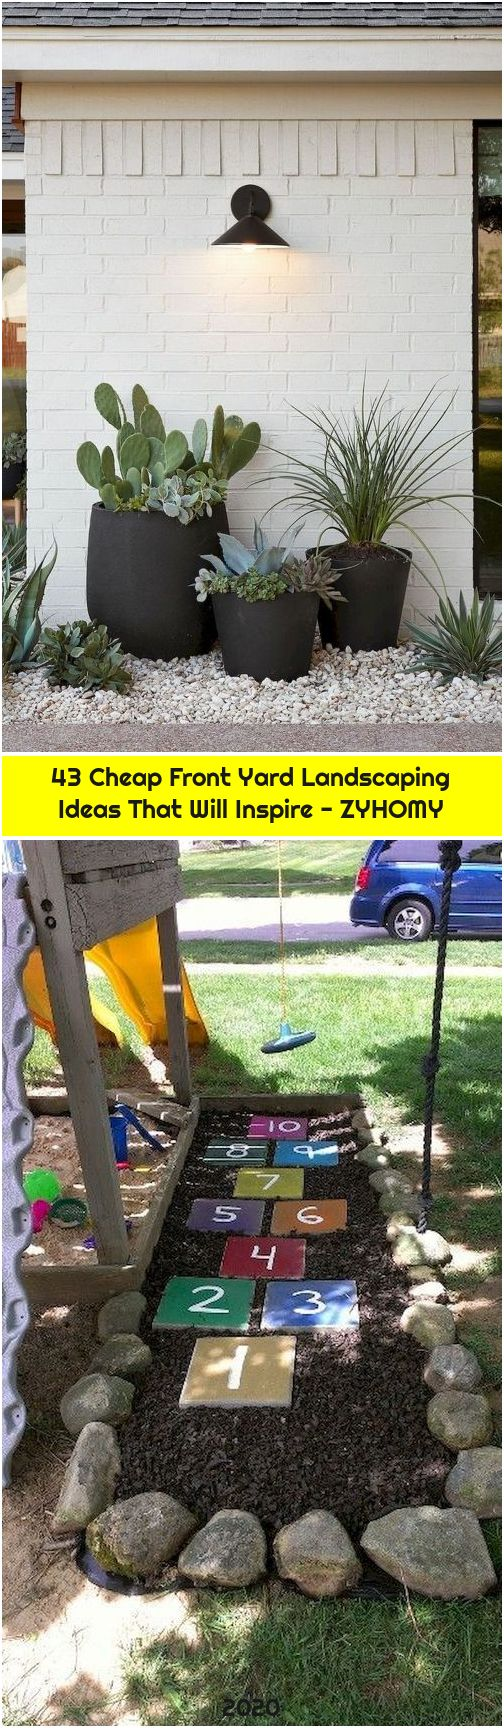 43 Cheap Front Yard Landscaping Ideas That Will Inspire - ZYHOMY